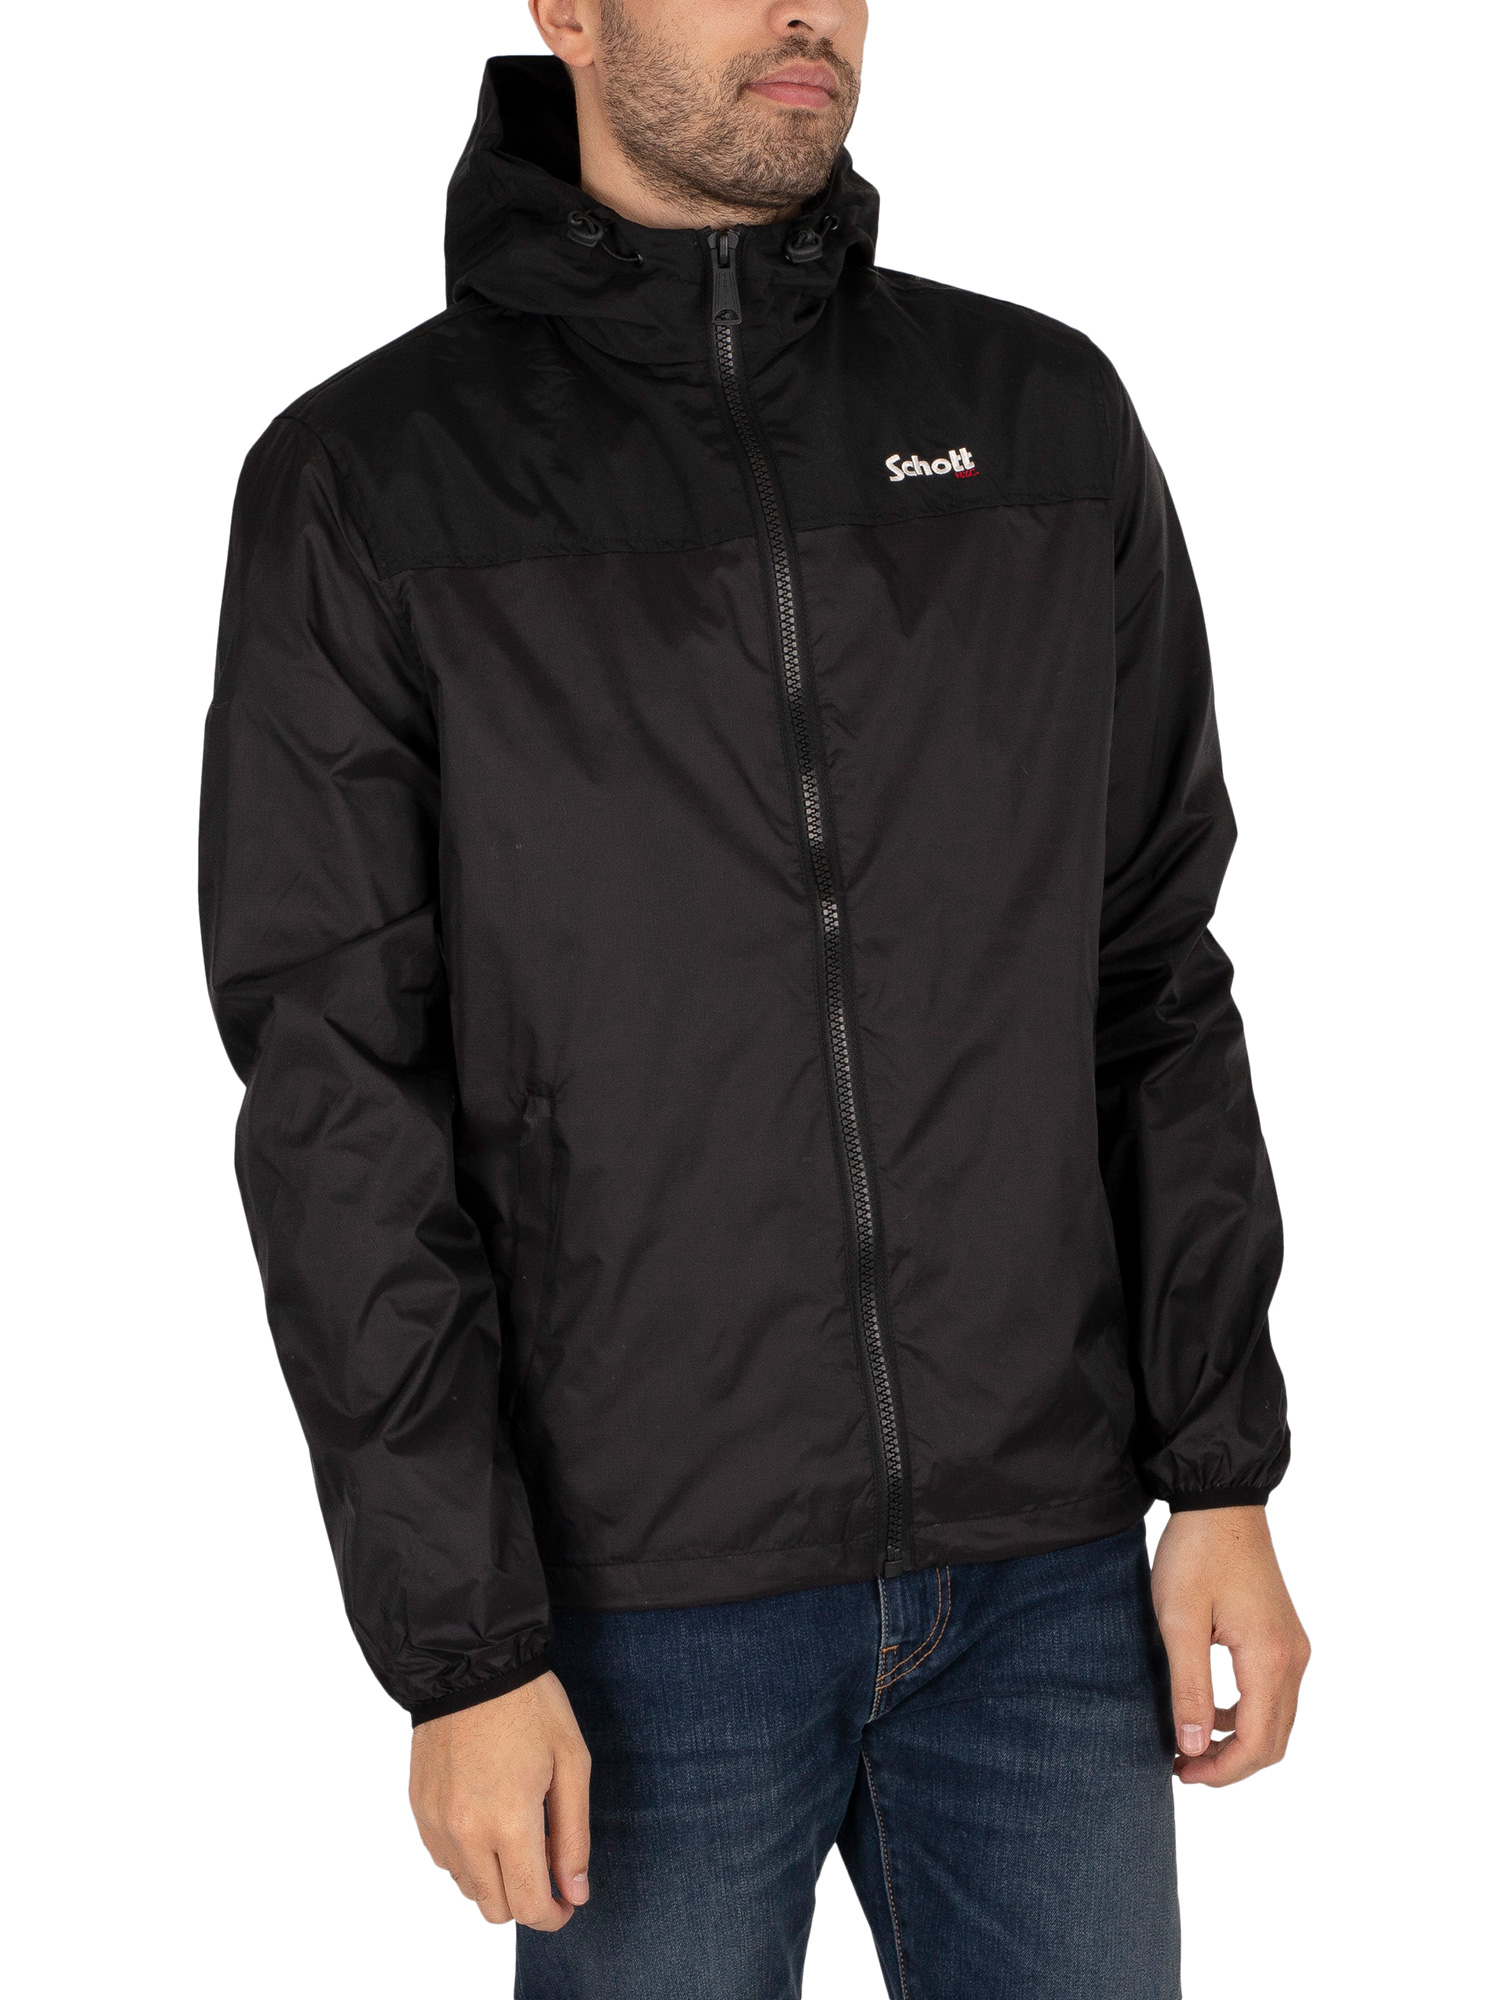 Impermeable Light Weight Jacket